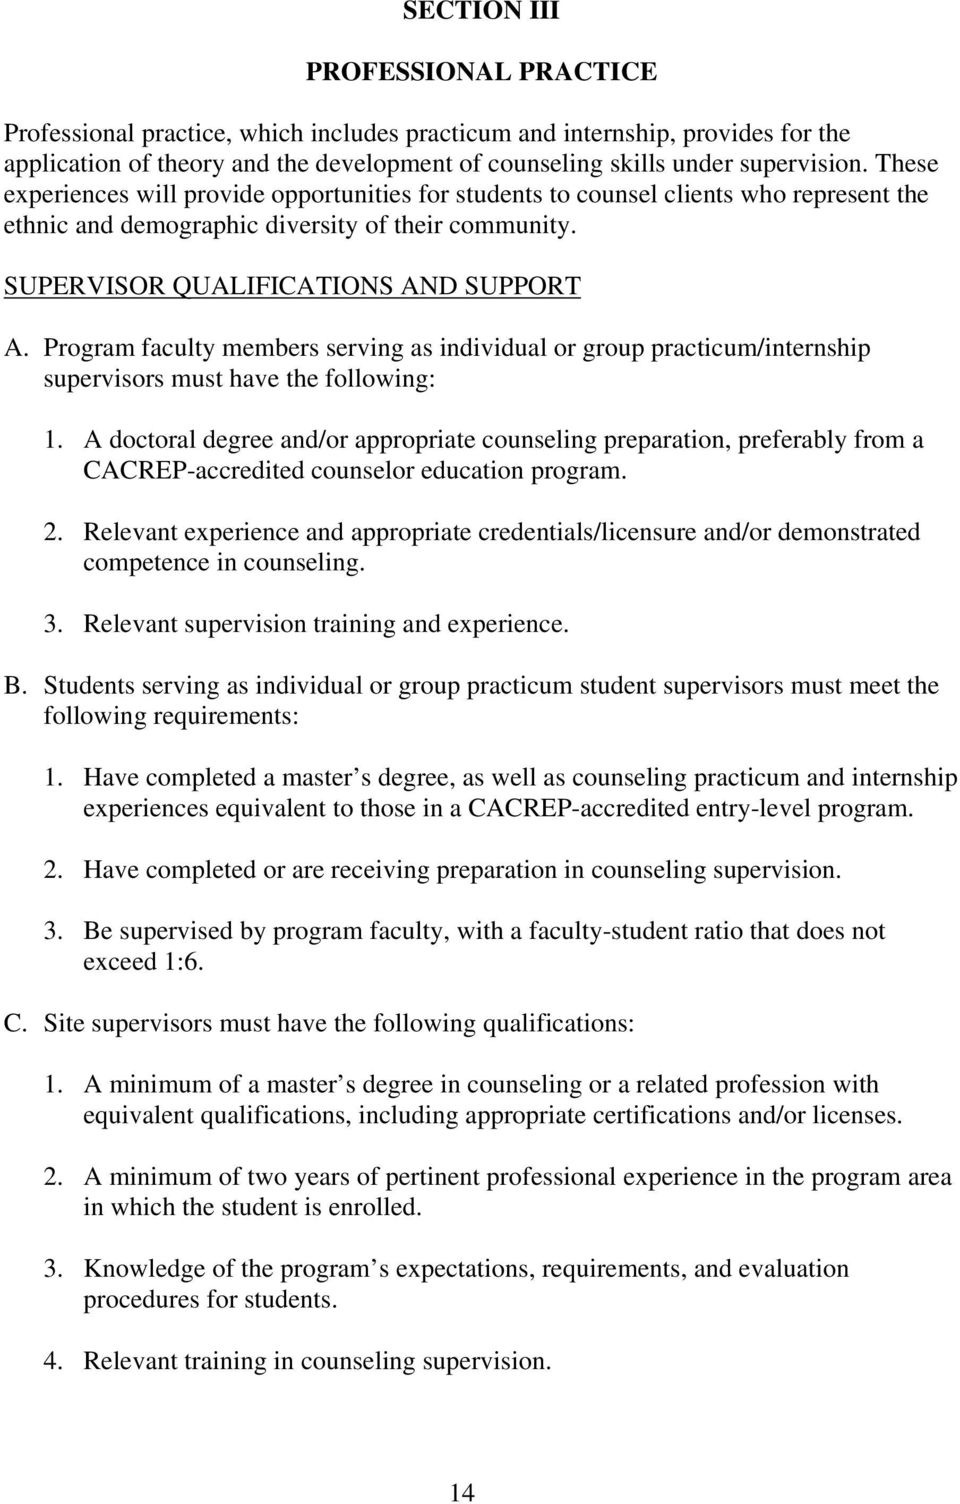 Program faculty members serving as individual or group practicum/internship supervisors must have the following: 1.